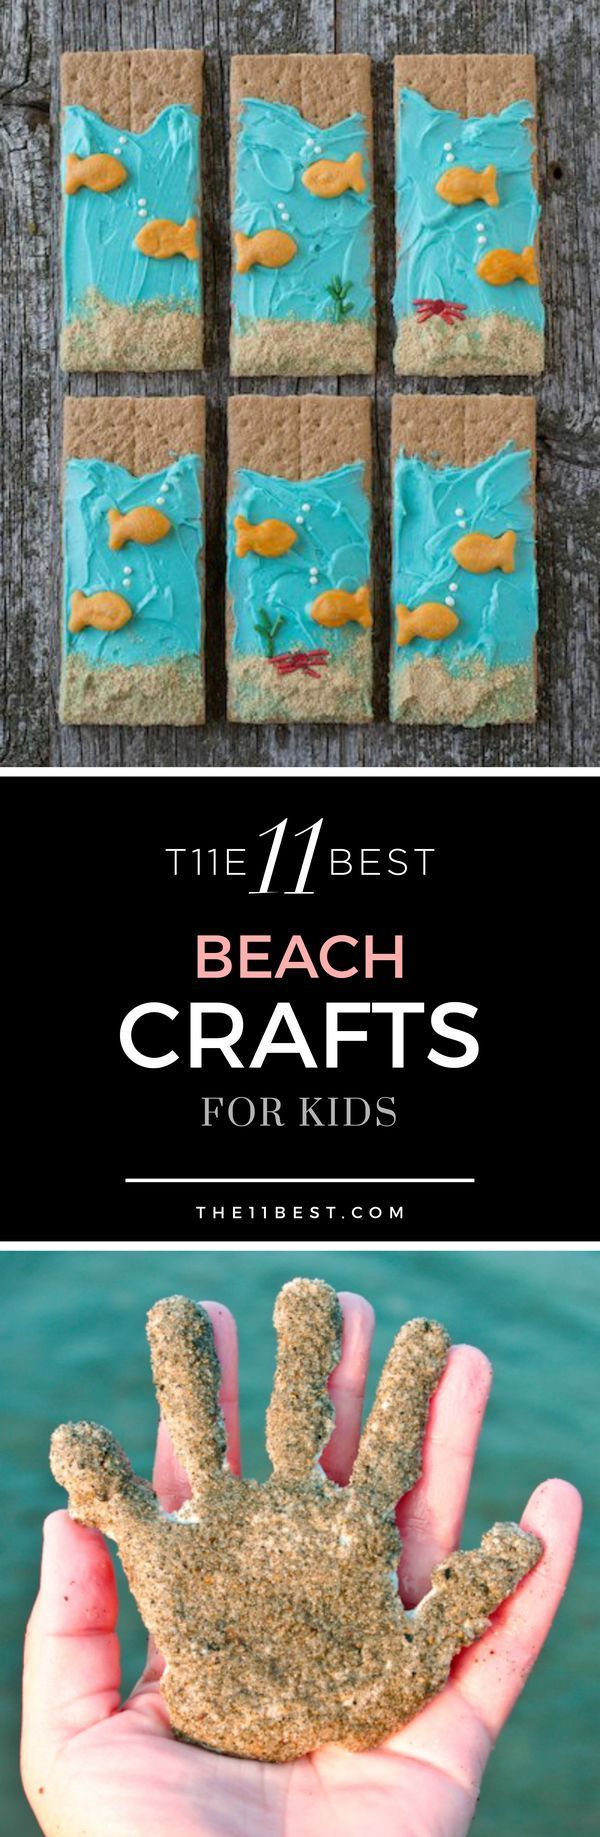 The 11 Best Beach Crafts for Kids